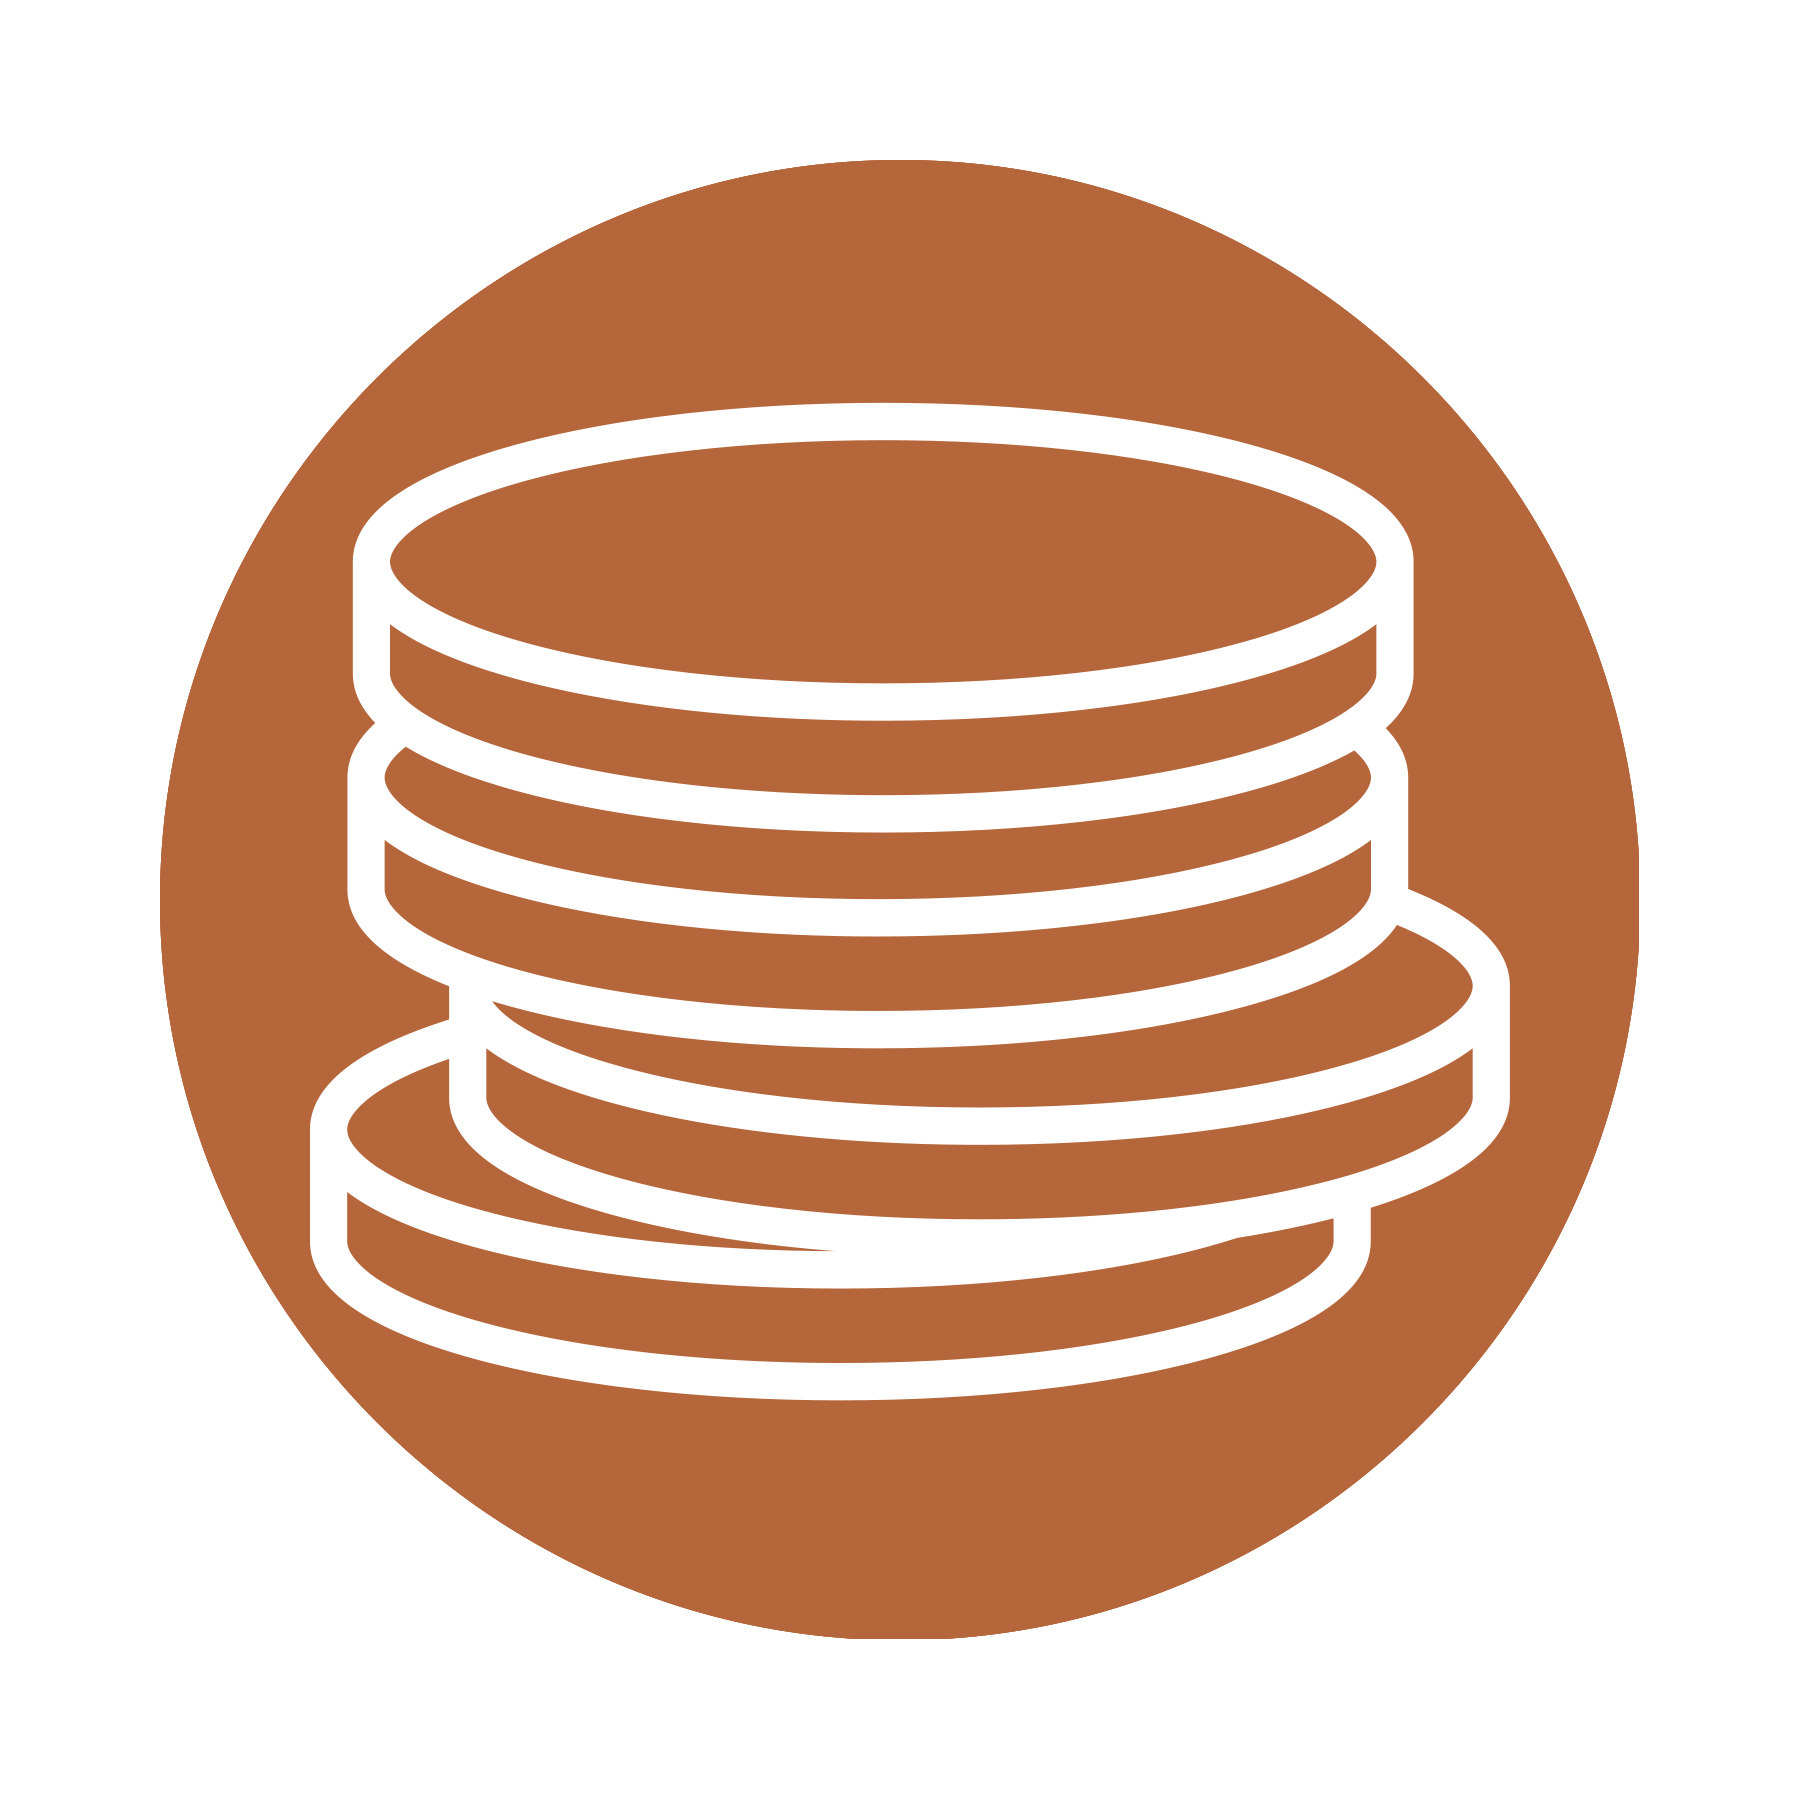 icon of stacked coins